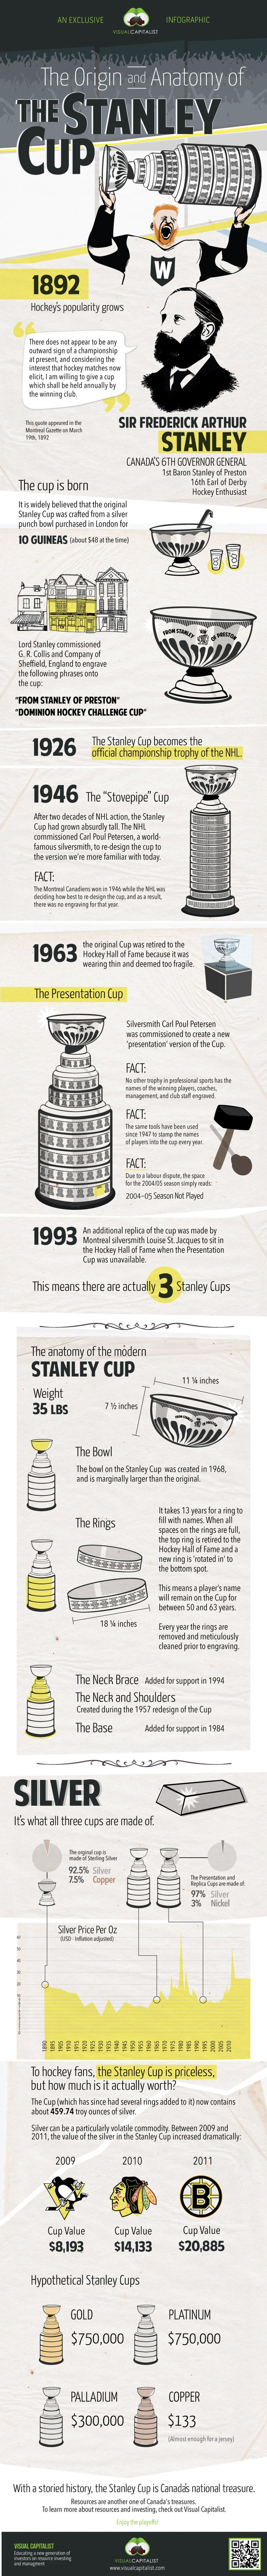 Unique Infographic Design, The Origin And Anatomy Of The Stanley Cup #Infographic #Design (http://www.pinterest.com/aldenchong/)